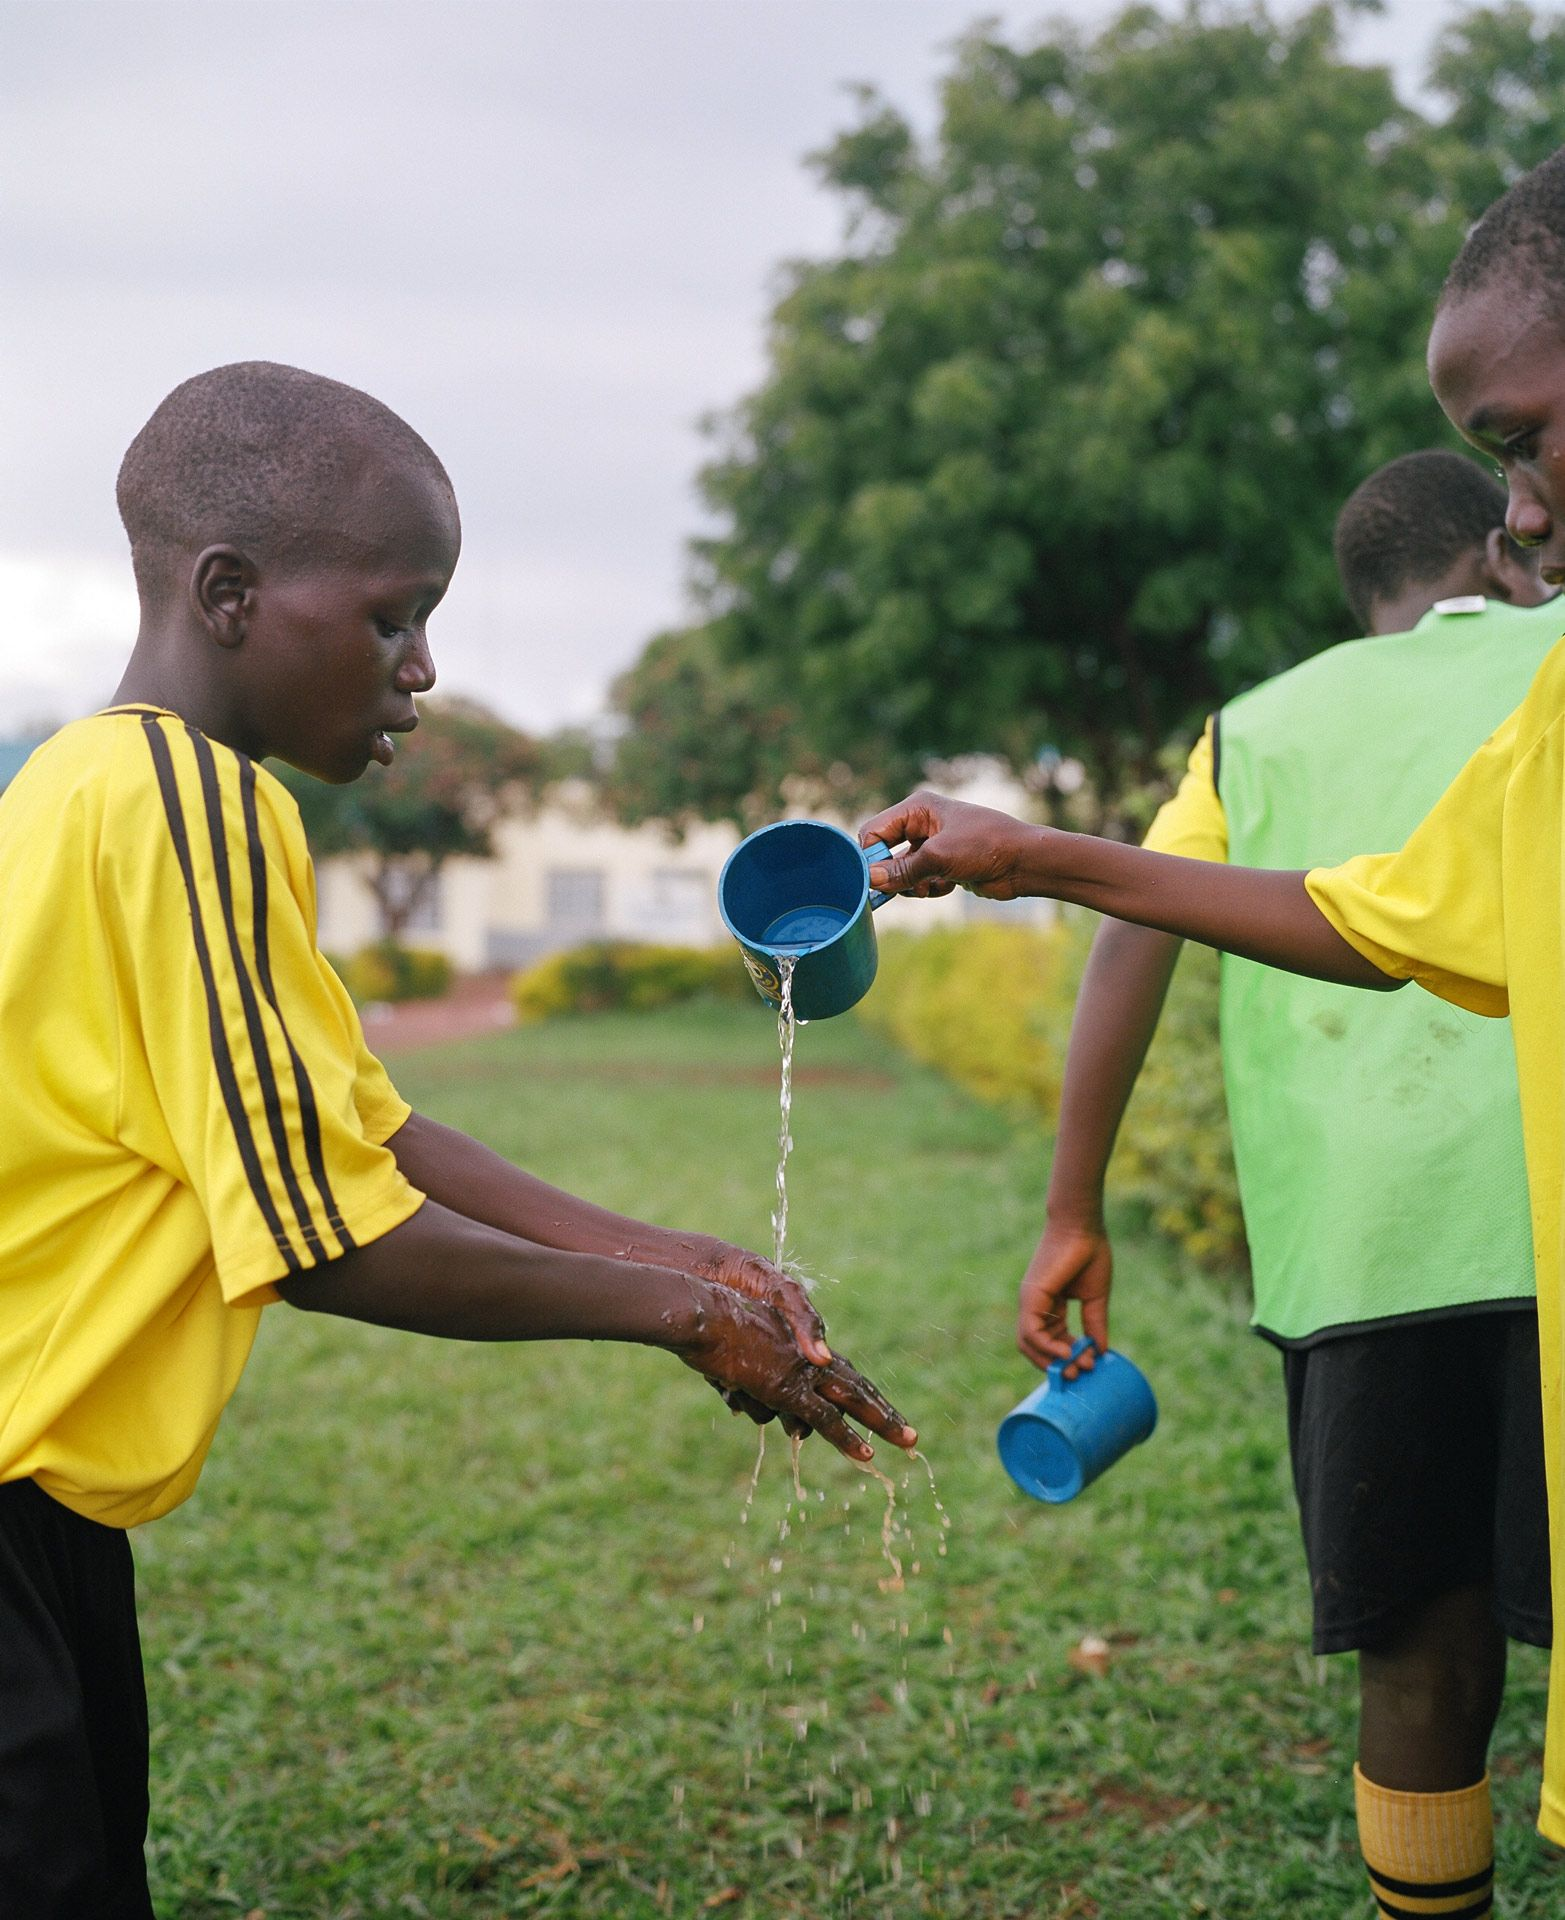 young black boy slowly pouring a blue cup of water for another boy to wash his hands by Alexi Hobbs in Uganda for Football for Good with Sportsnet